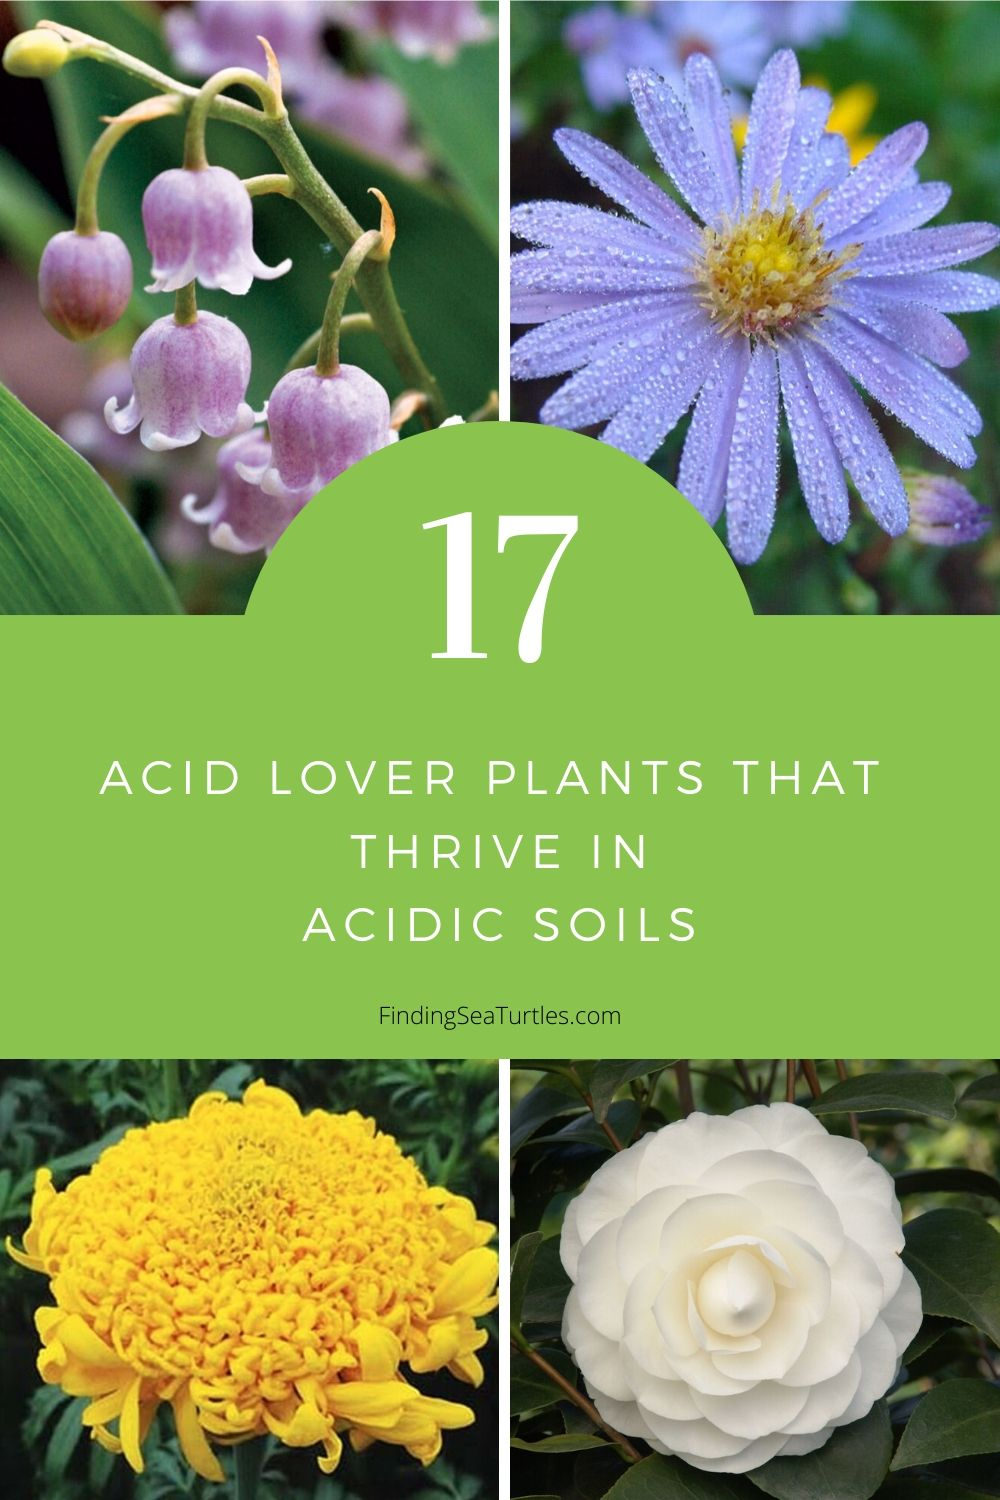 17 Acid Lover Plants that Thrive in Acidic Soils #Perennials #AcidLovingPerennials #AcidLovingPlants #Gardening #AcidicSoil